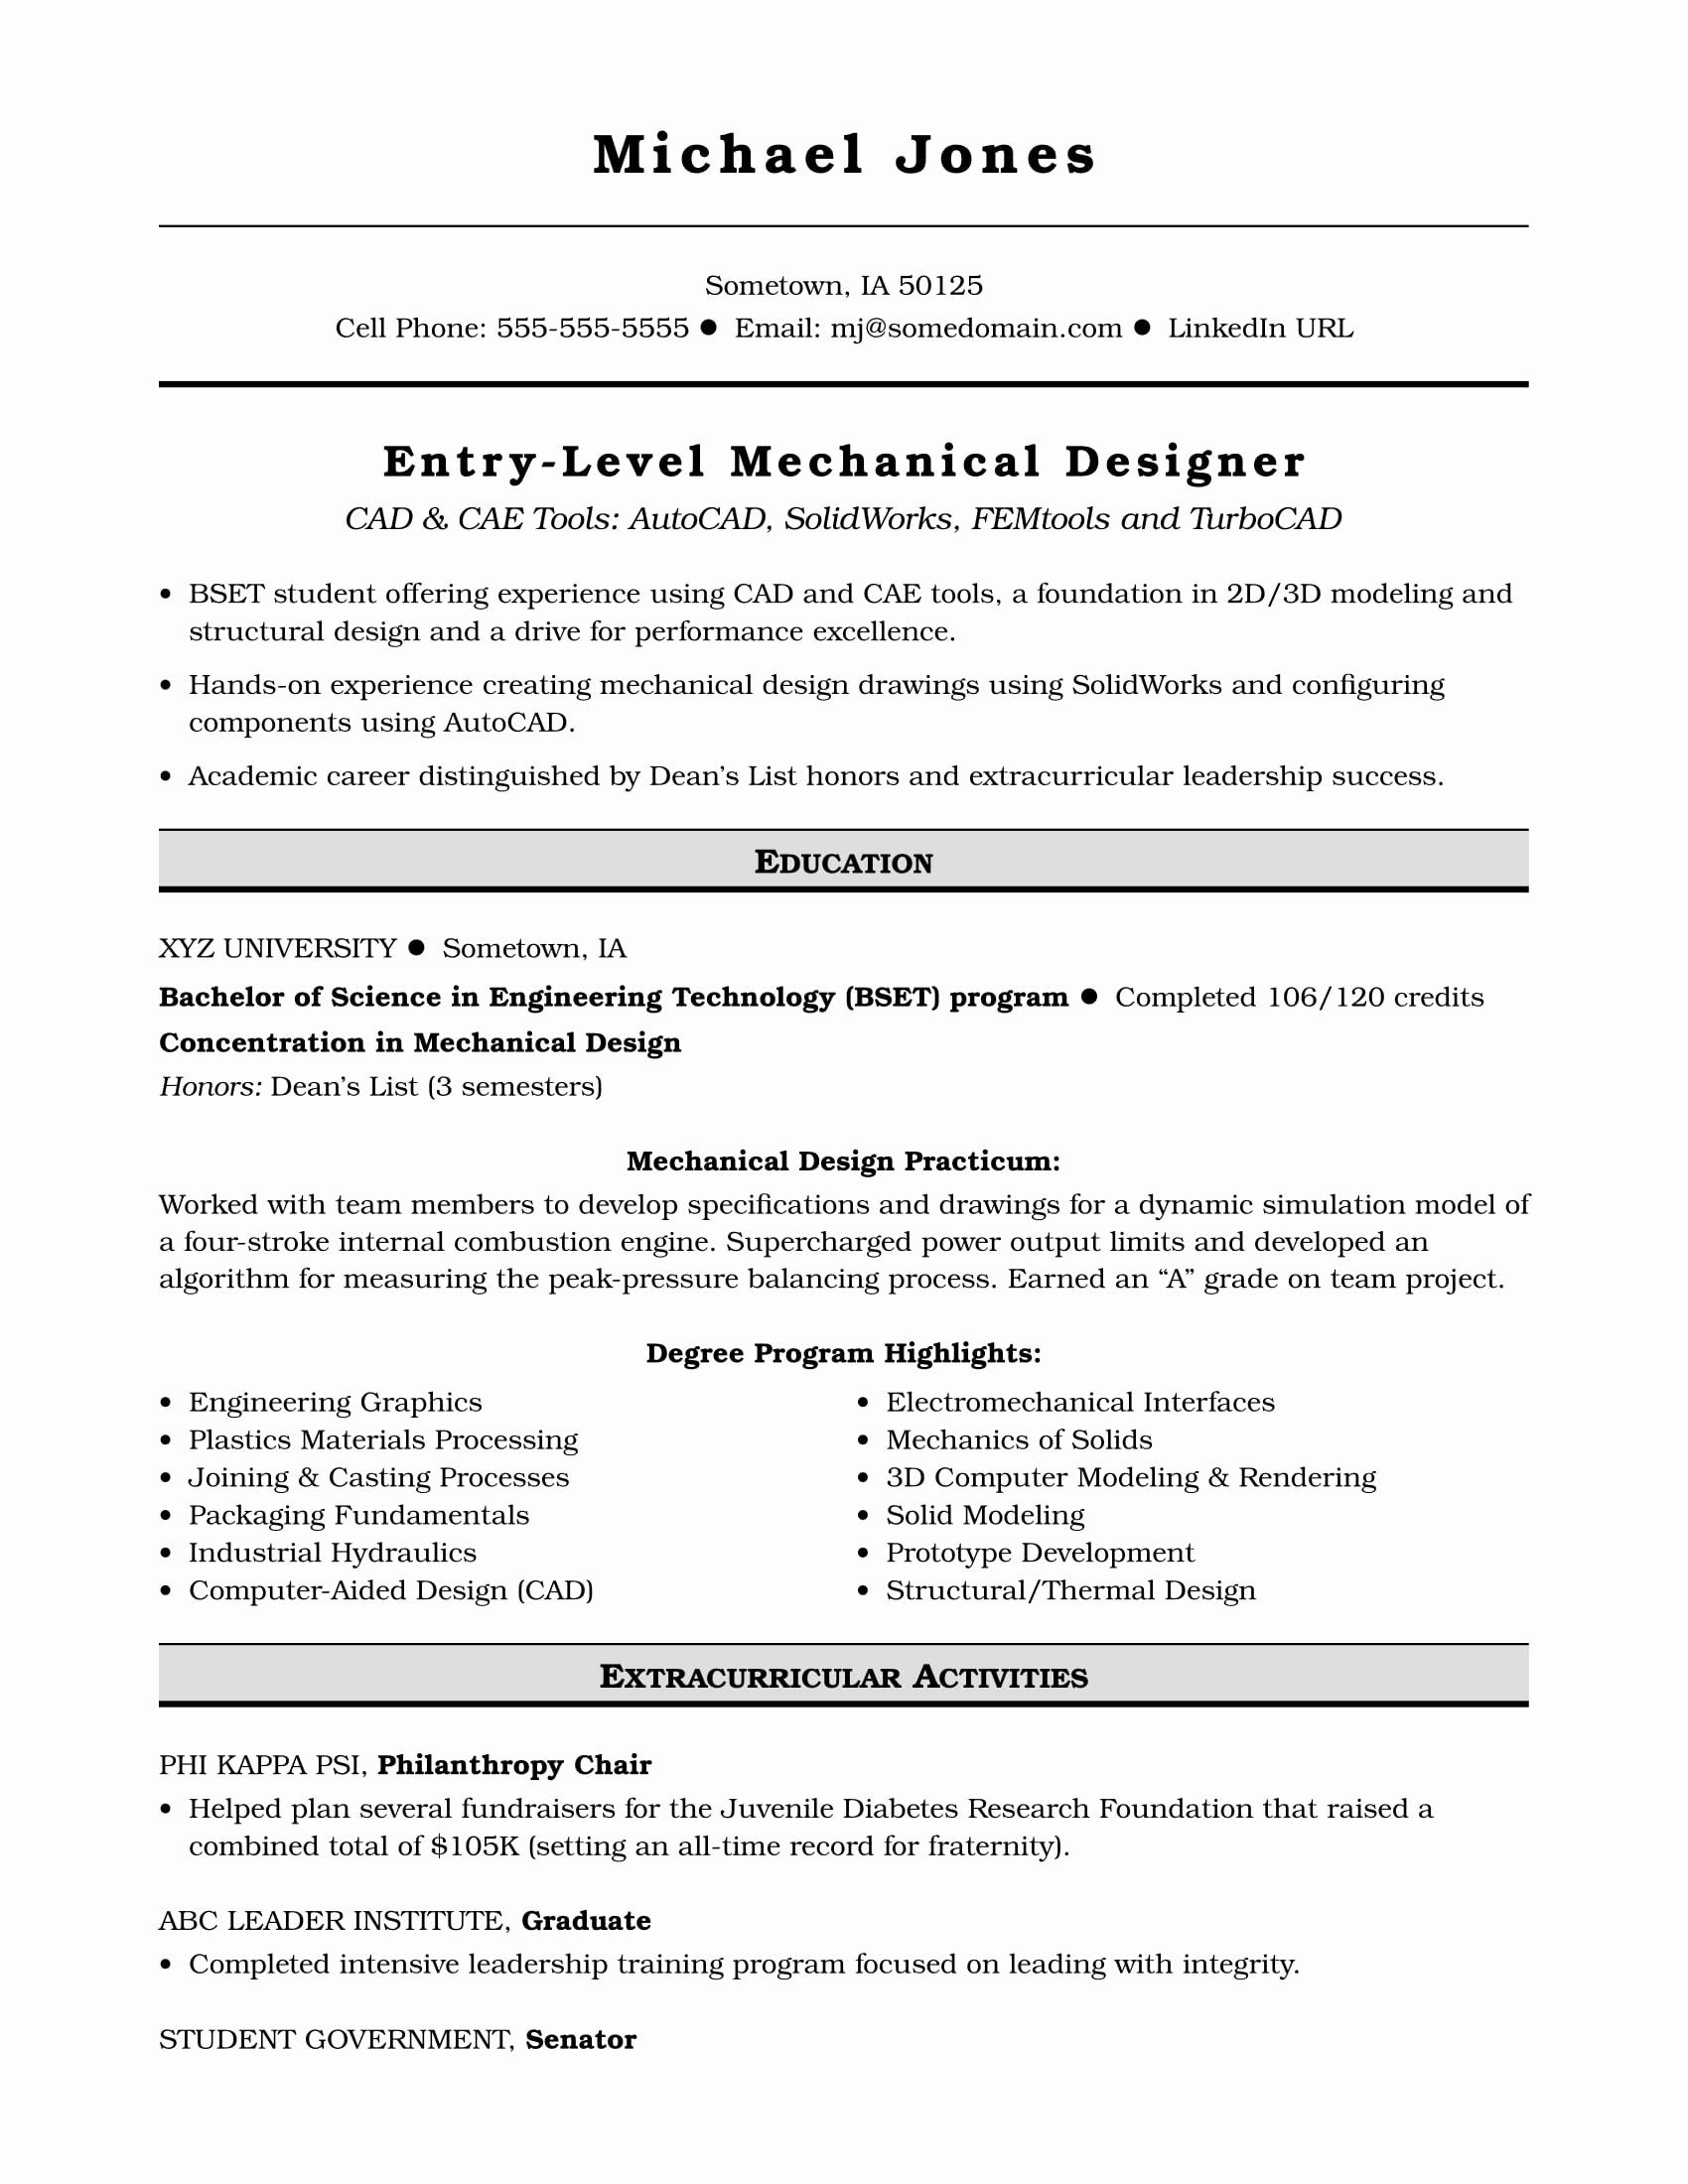 Entry Level Software Developer Resume New Sample Resume For An Entry Level Mechanical Designer